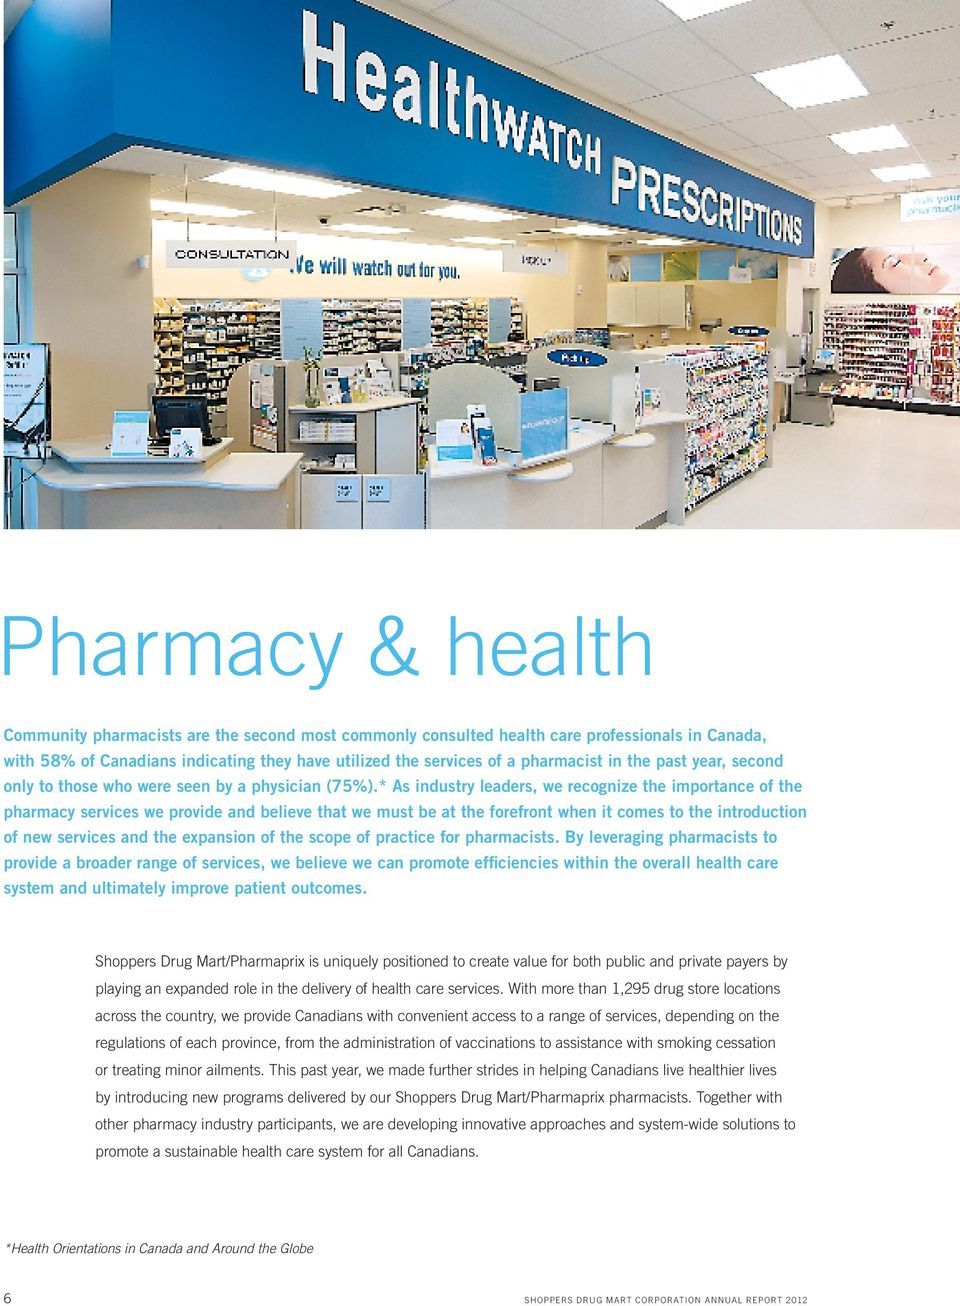 * As industry leaders, we recognize the importance of the pharmacy services we provide and believe that we must be at the forefront when it comes to the introduction of new services and the expansion